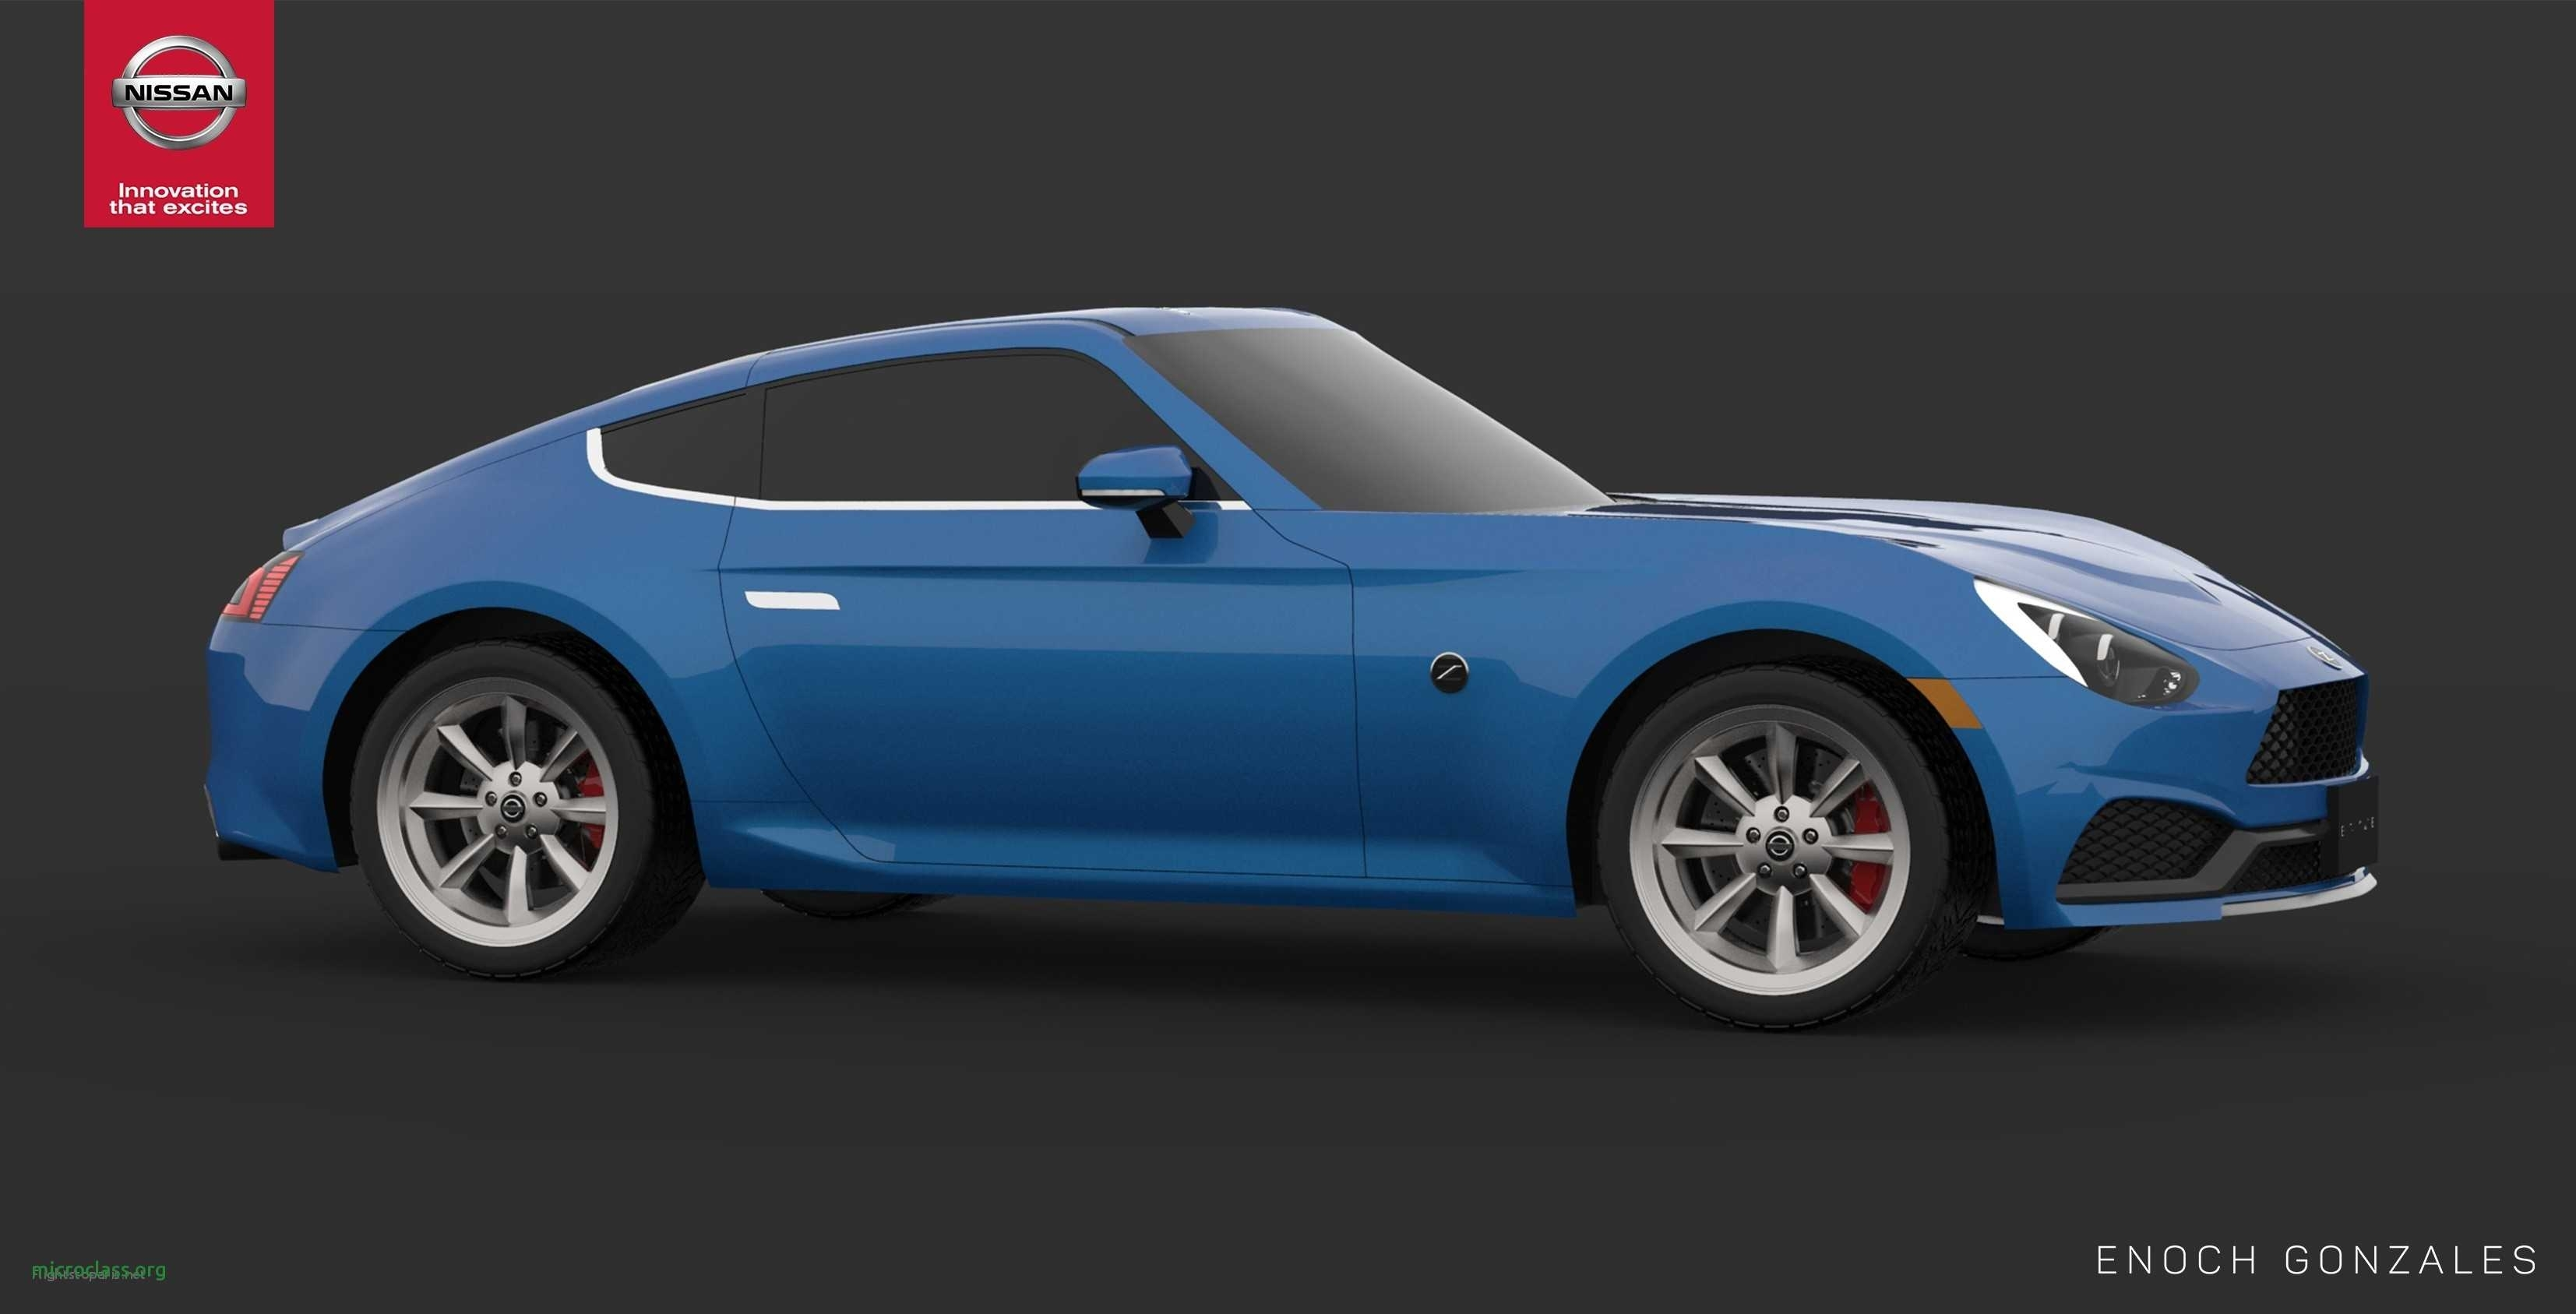 73 A 2019 Nissan Z35 Review Rumors